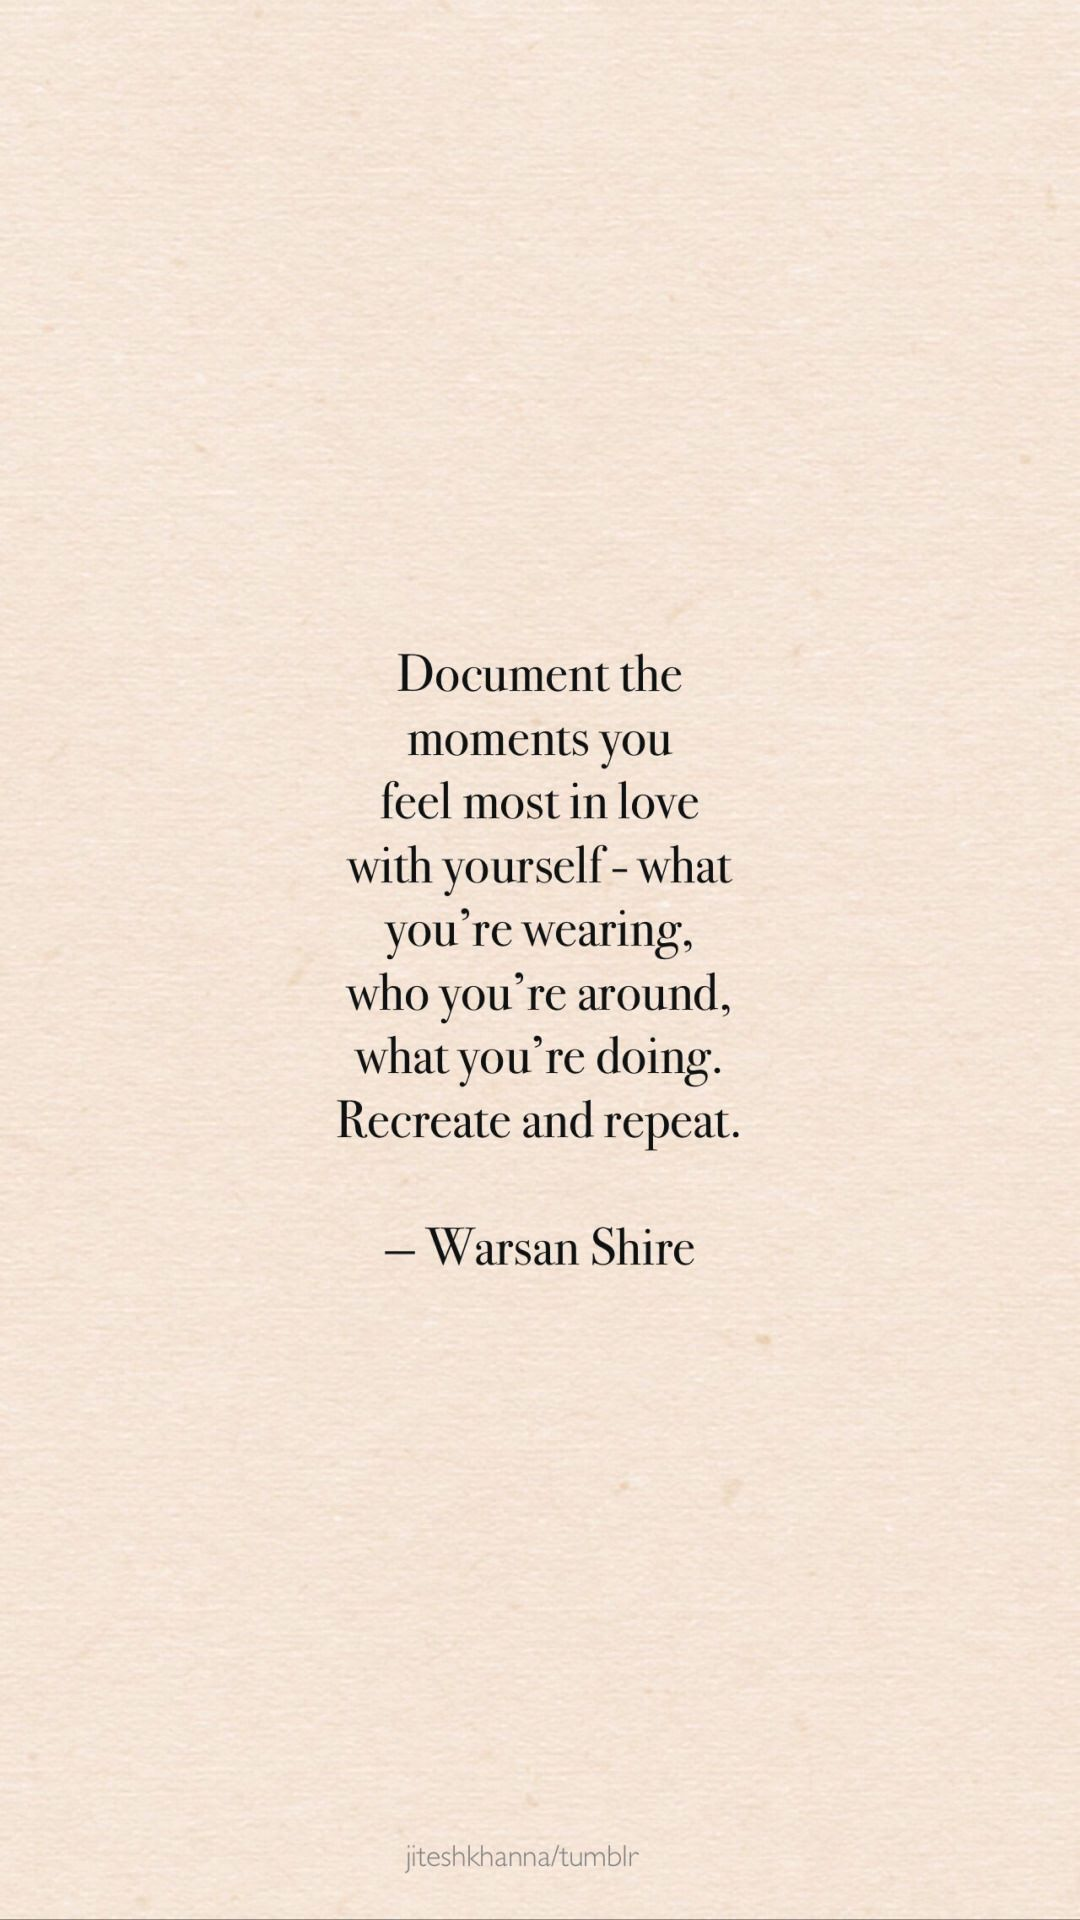 Quotes on self love Document the moments you feel most in love with yourself